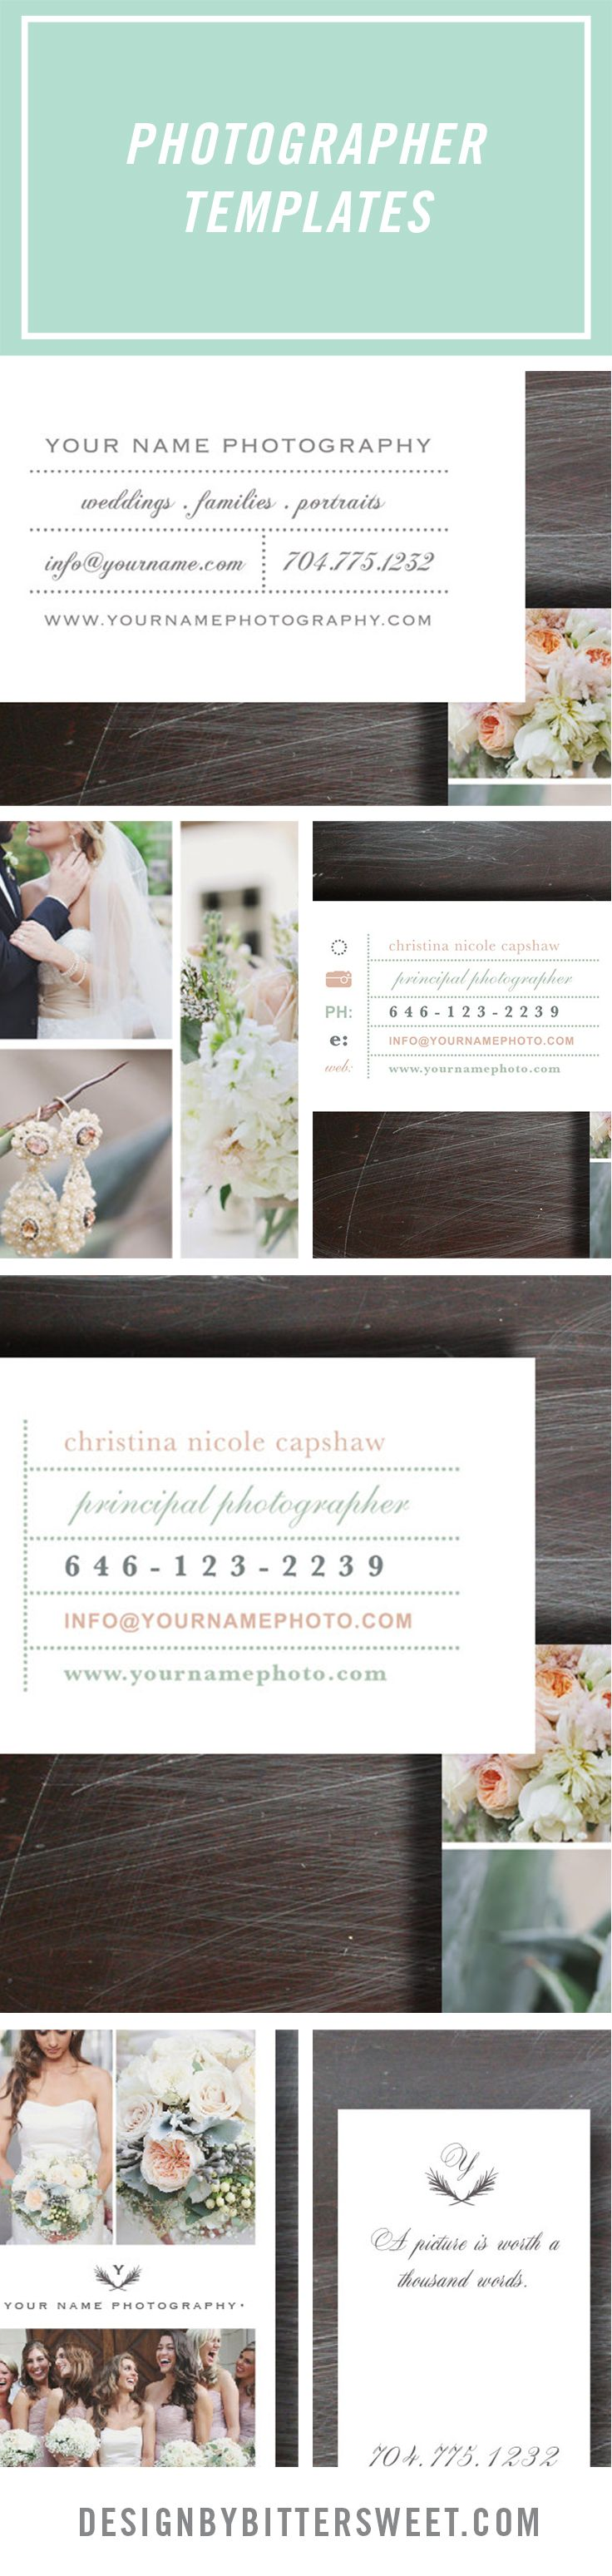 121 best Business Card Ideas images on Pinterest   Business card ...